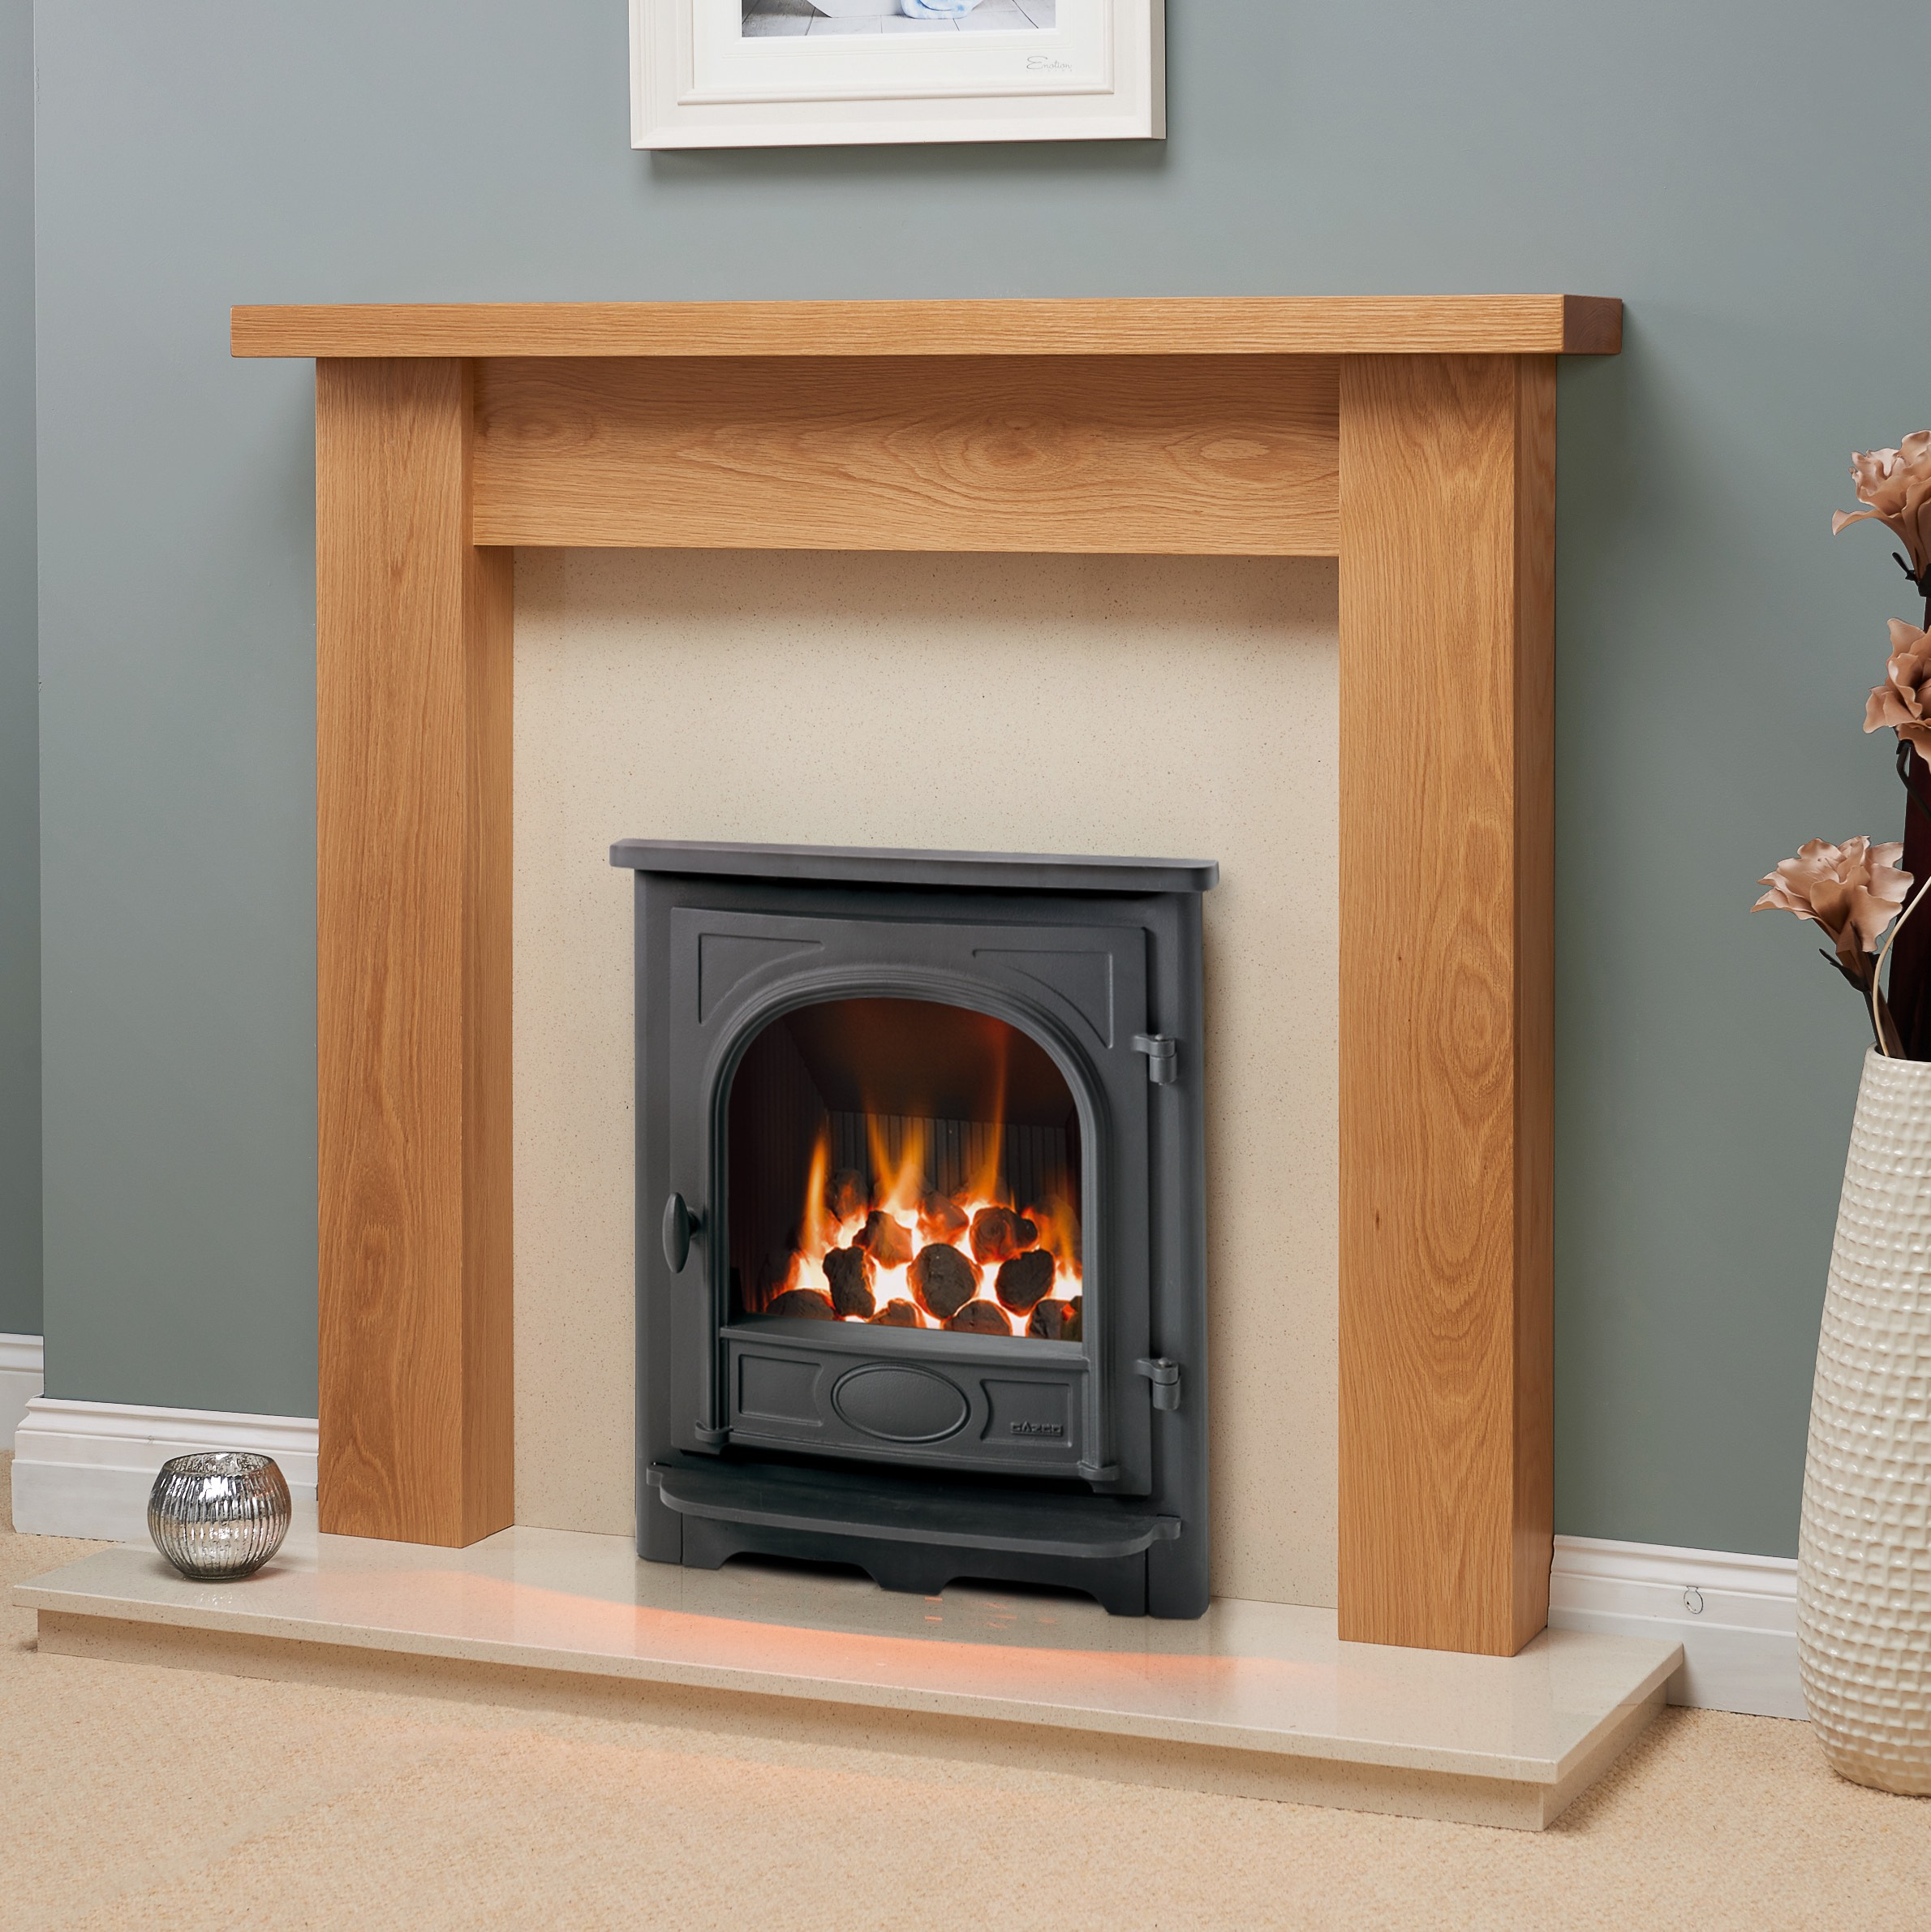 Fairways Hawthorn Solid Oak Fire Surround